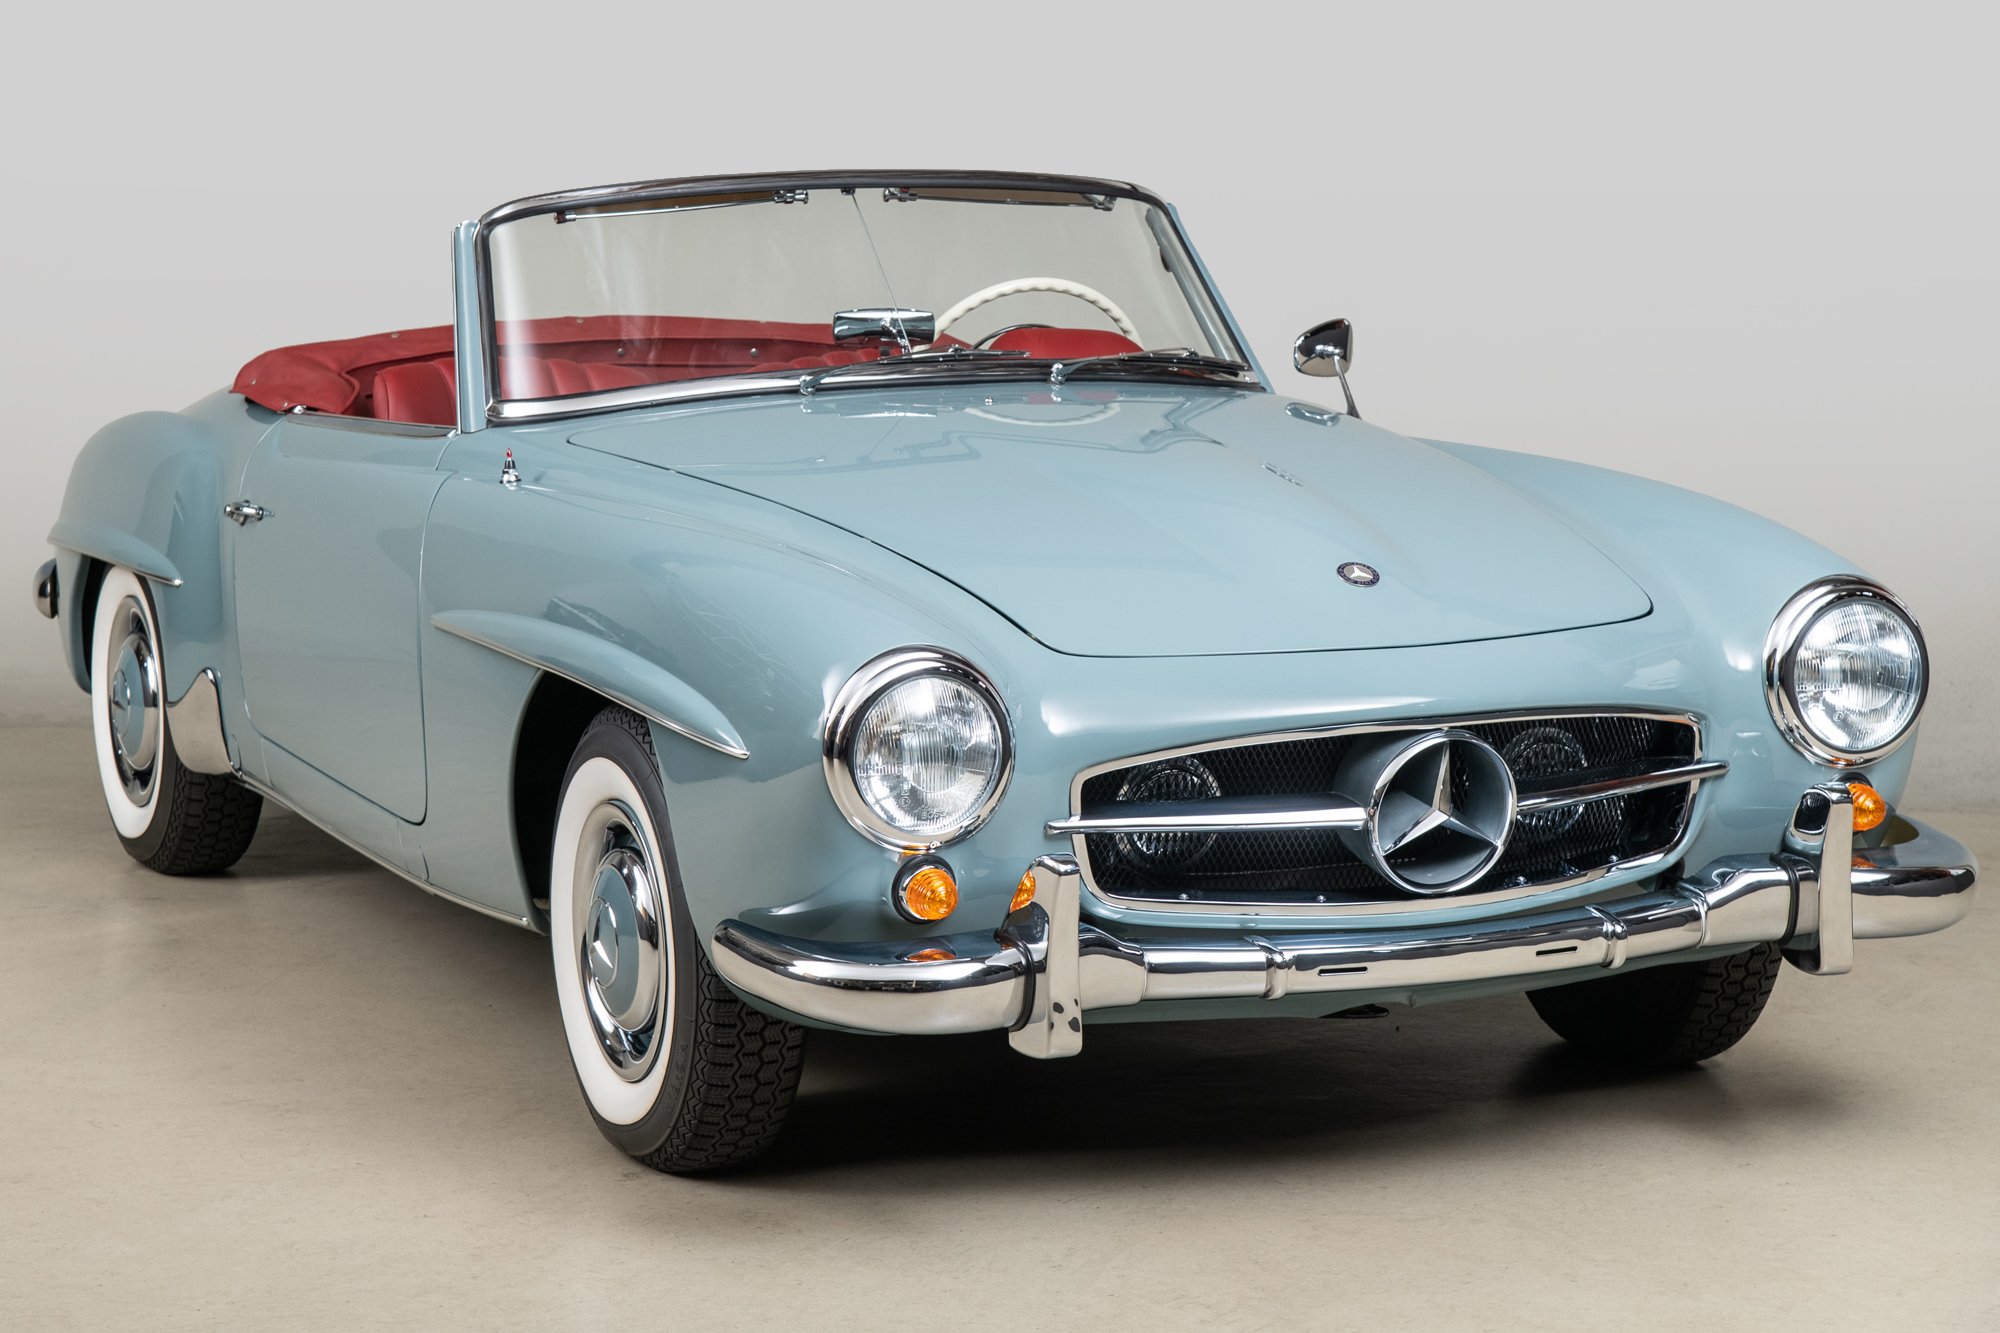 1959 Mercedes-Benz 190SL , BLUE GRAY, VIN 121042-10-9501933, MILEAGE 2407